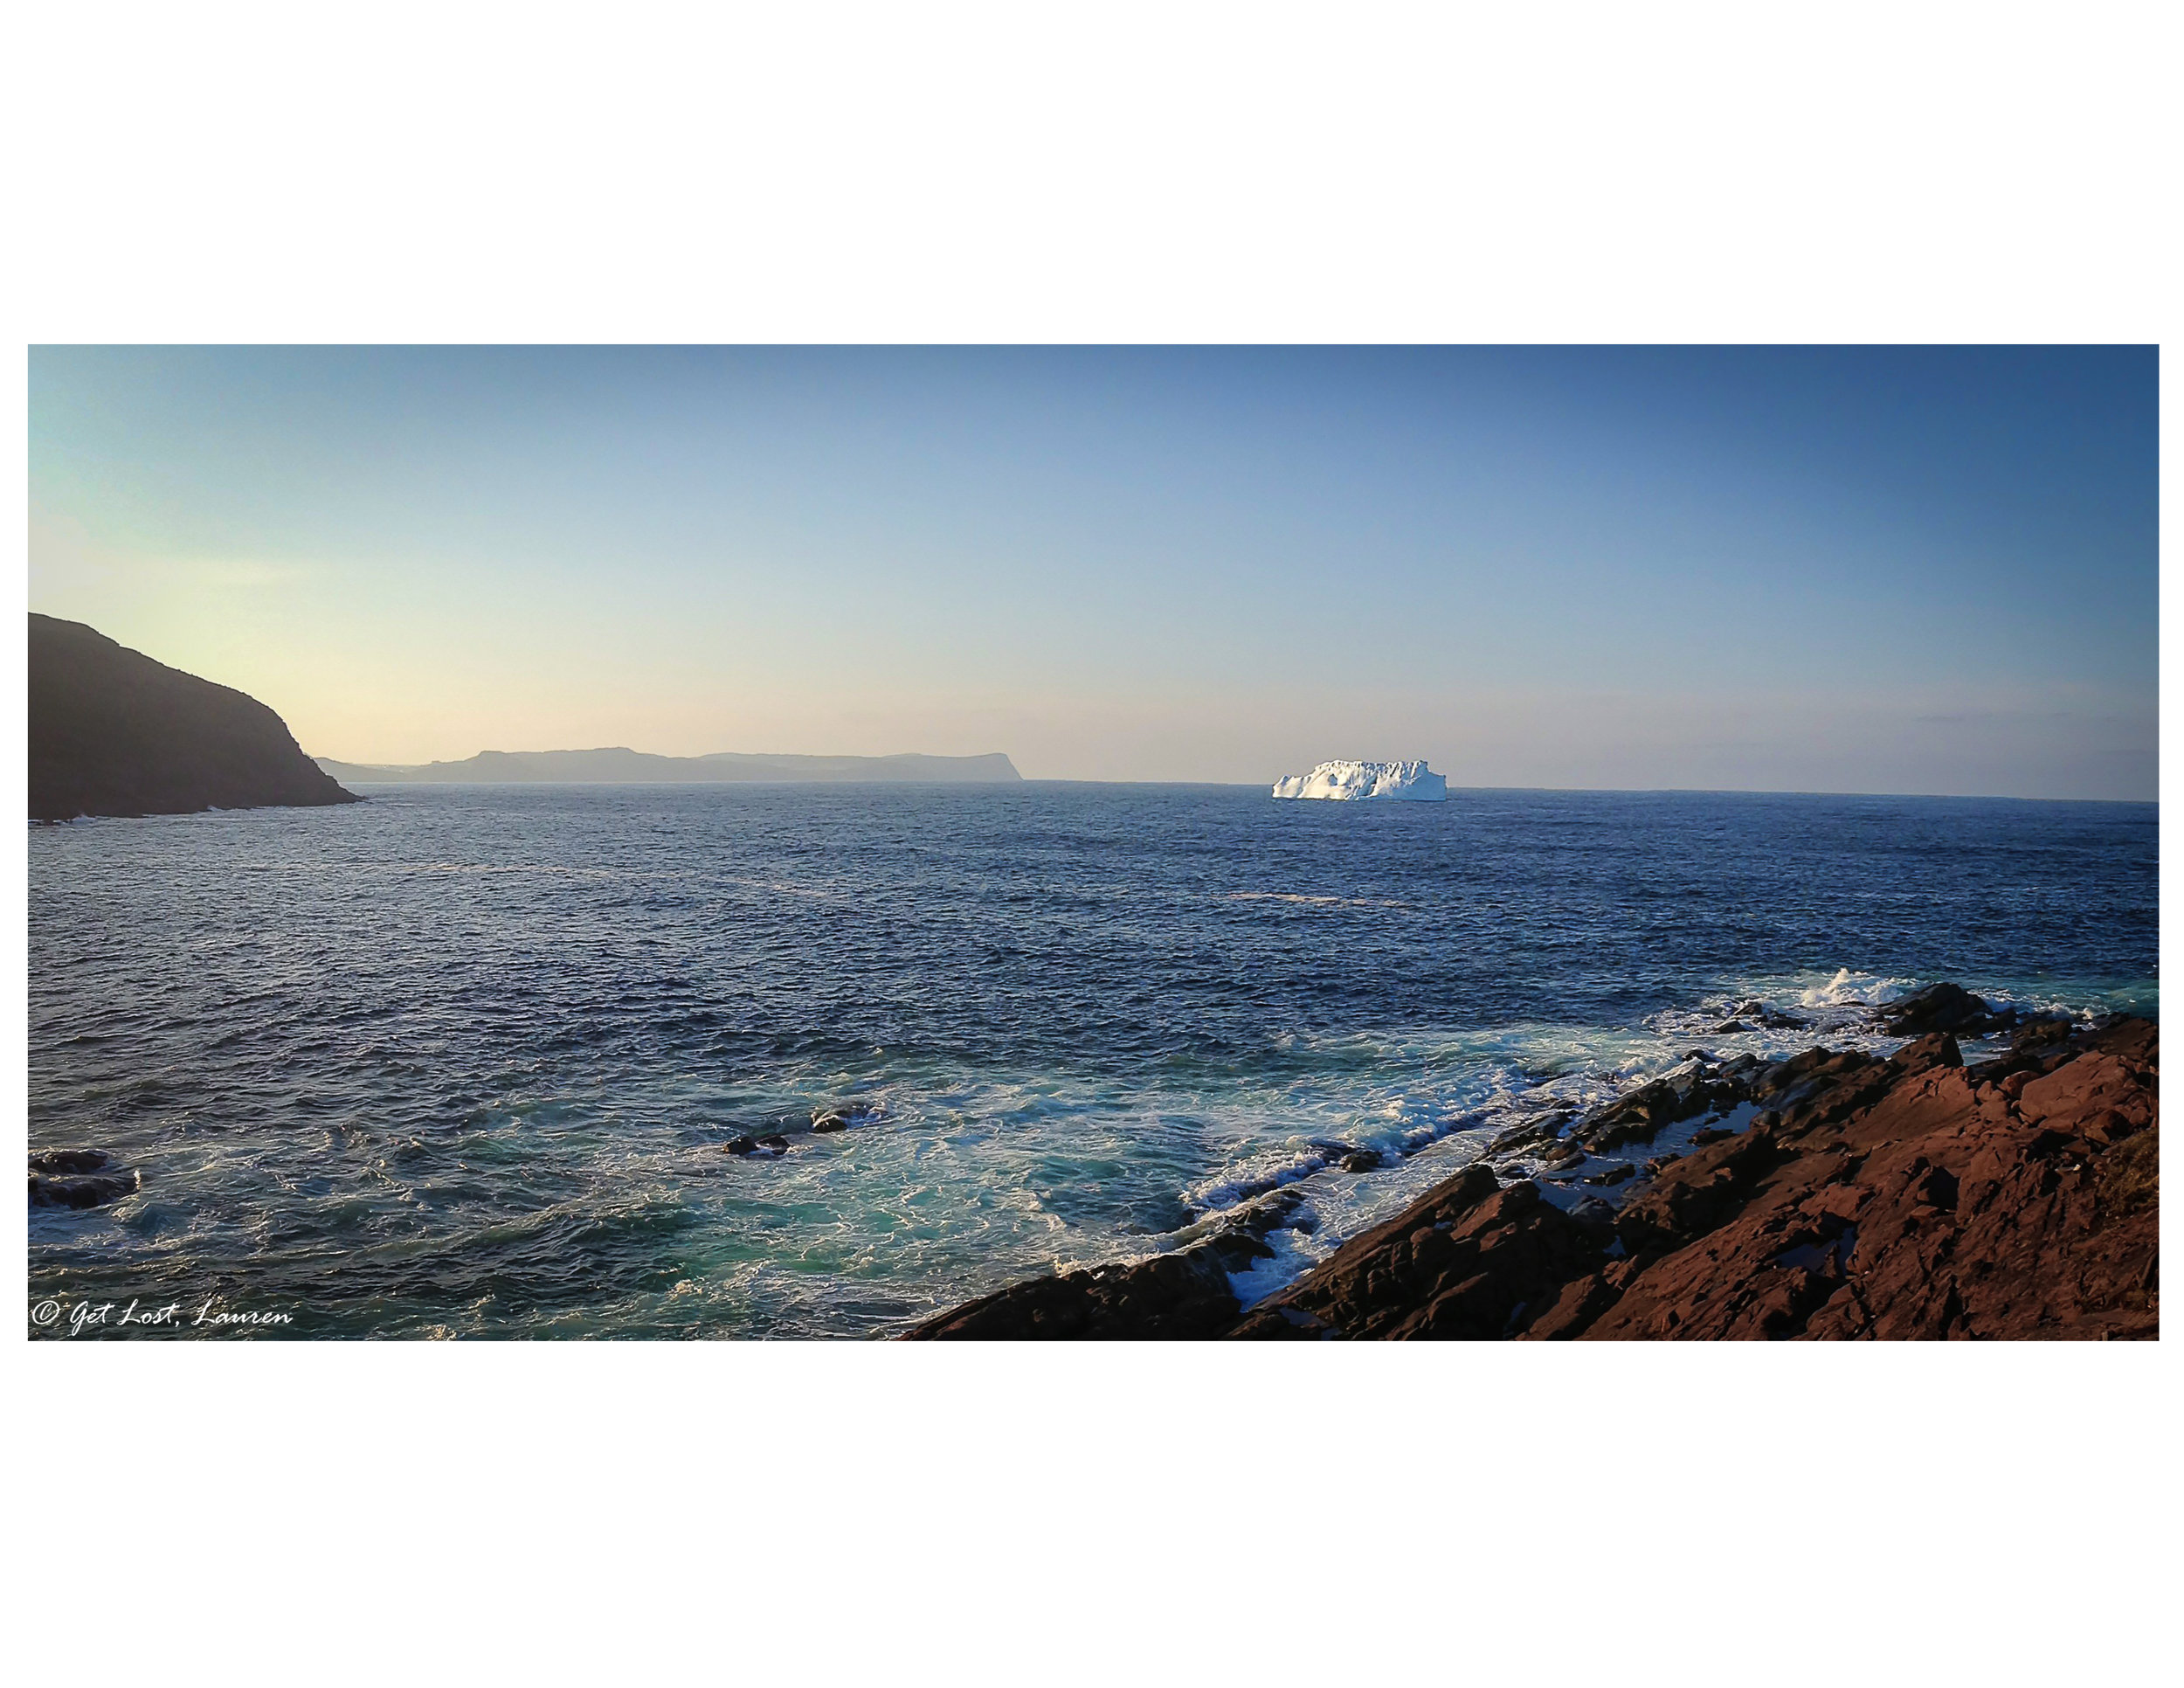 Iceberg sighting from Cape Spear near St. John's, Newfoundland, CA.